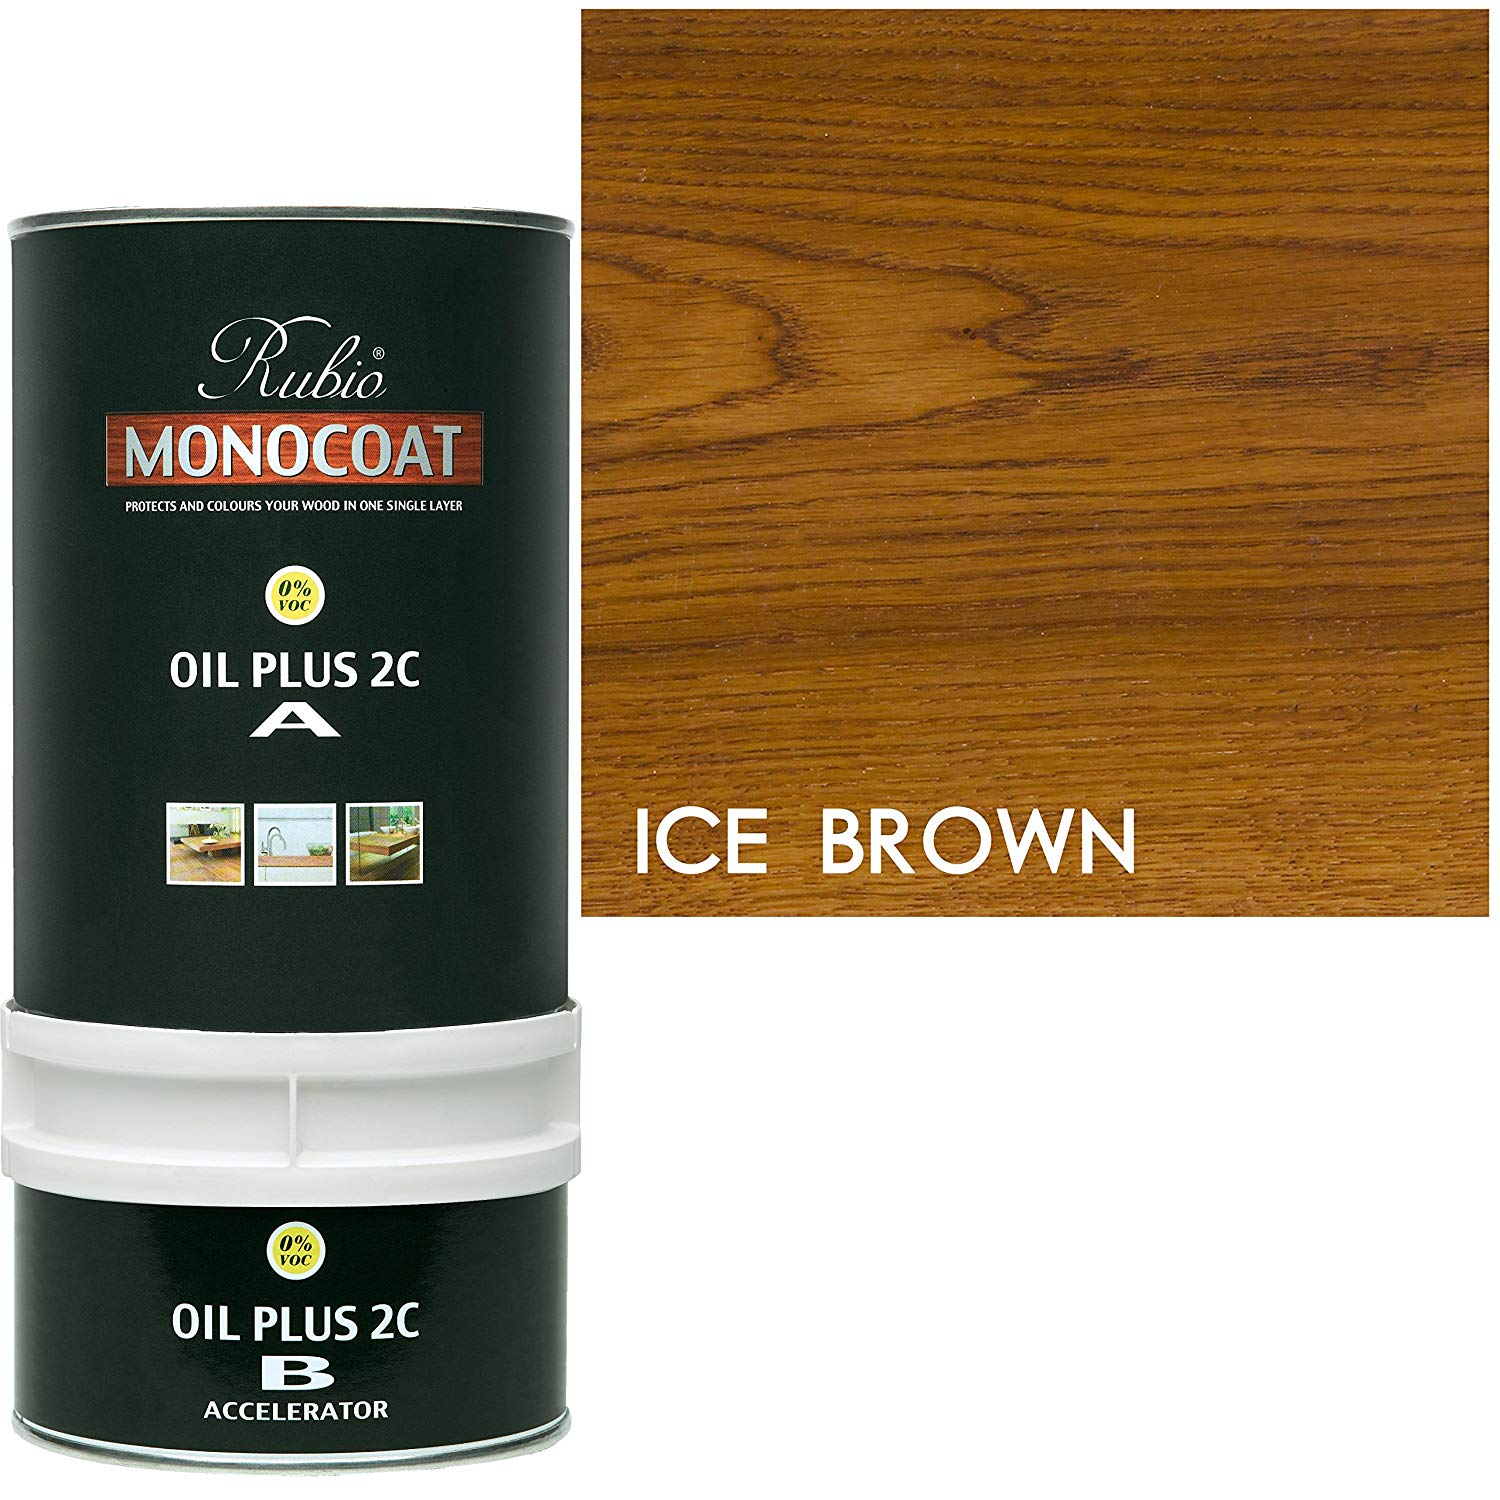 Rubio Monocoat Oil Plus 2C - Ice brown